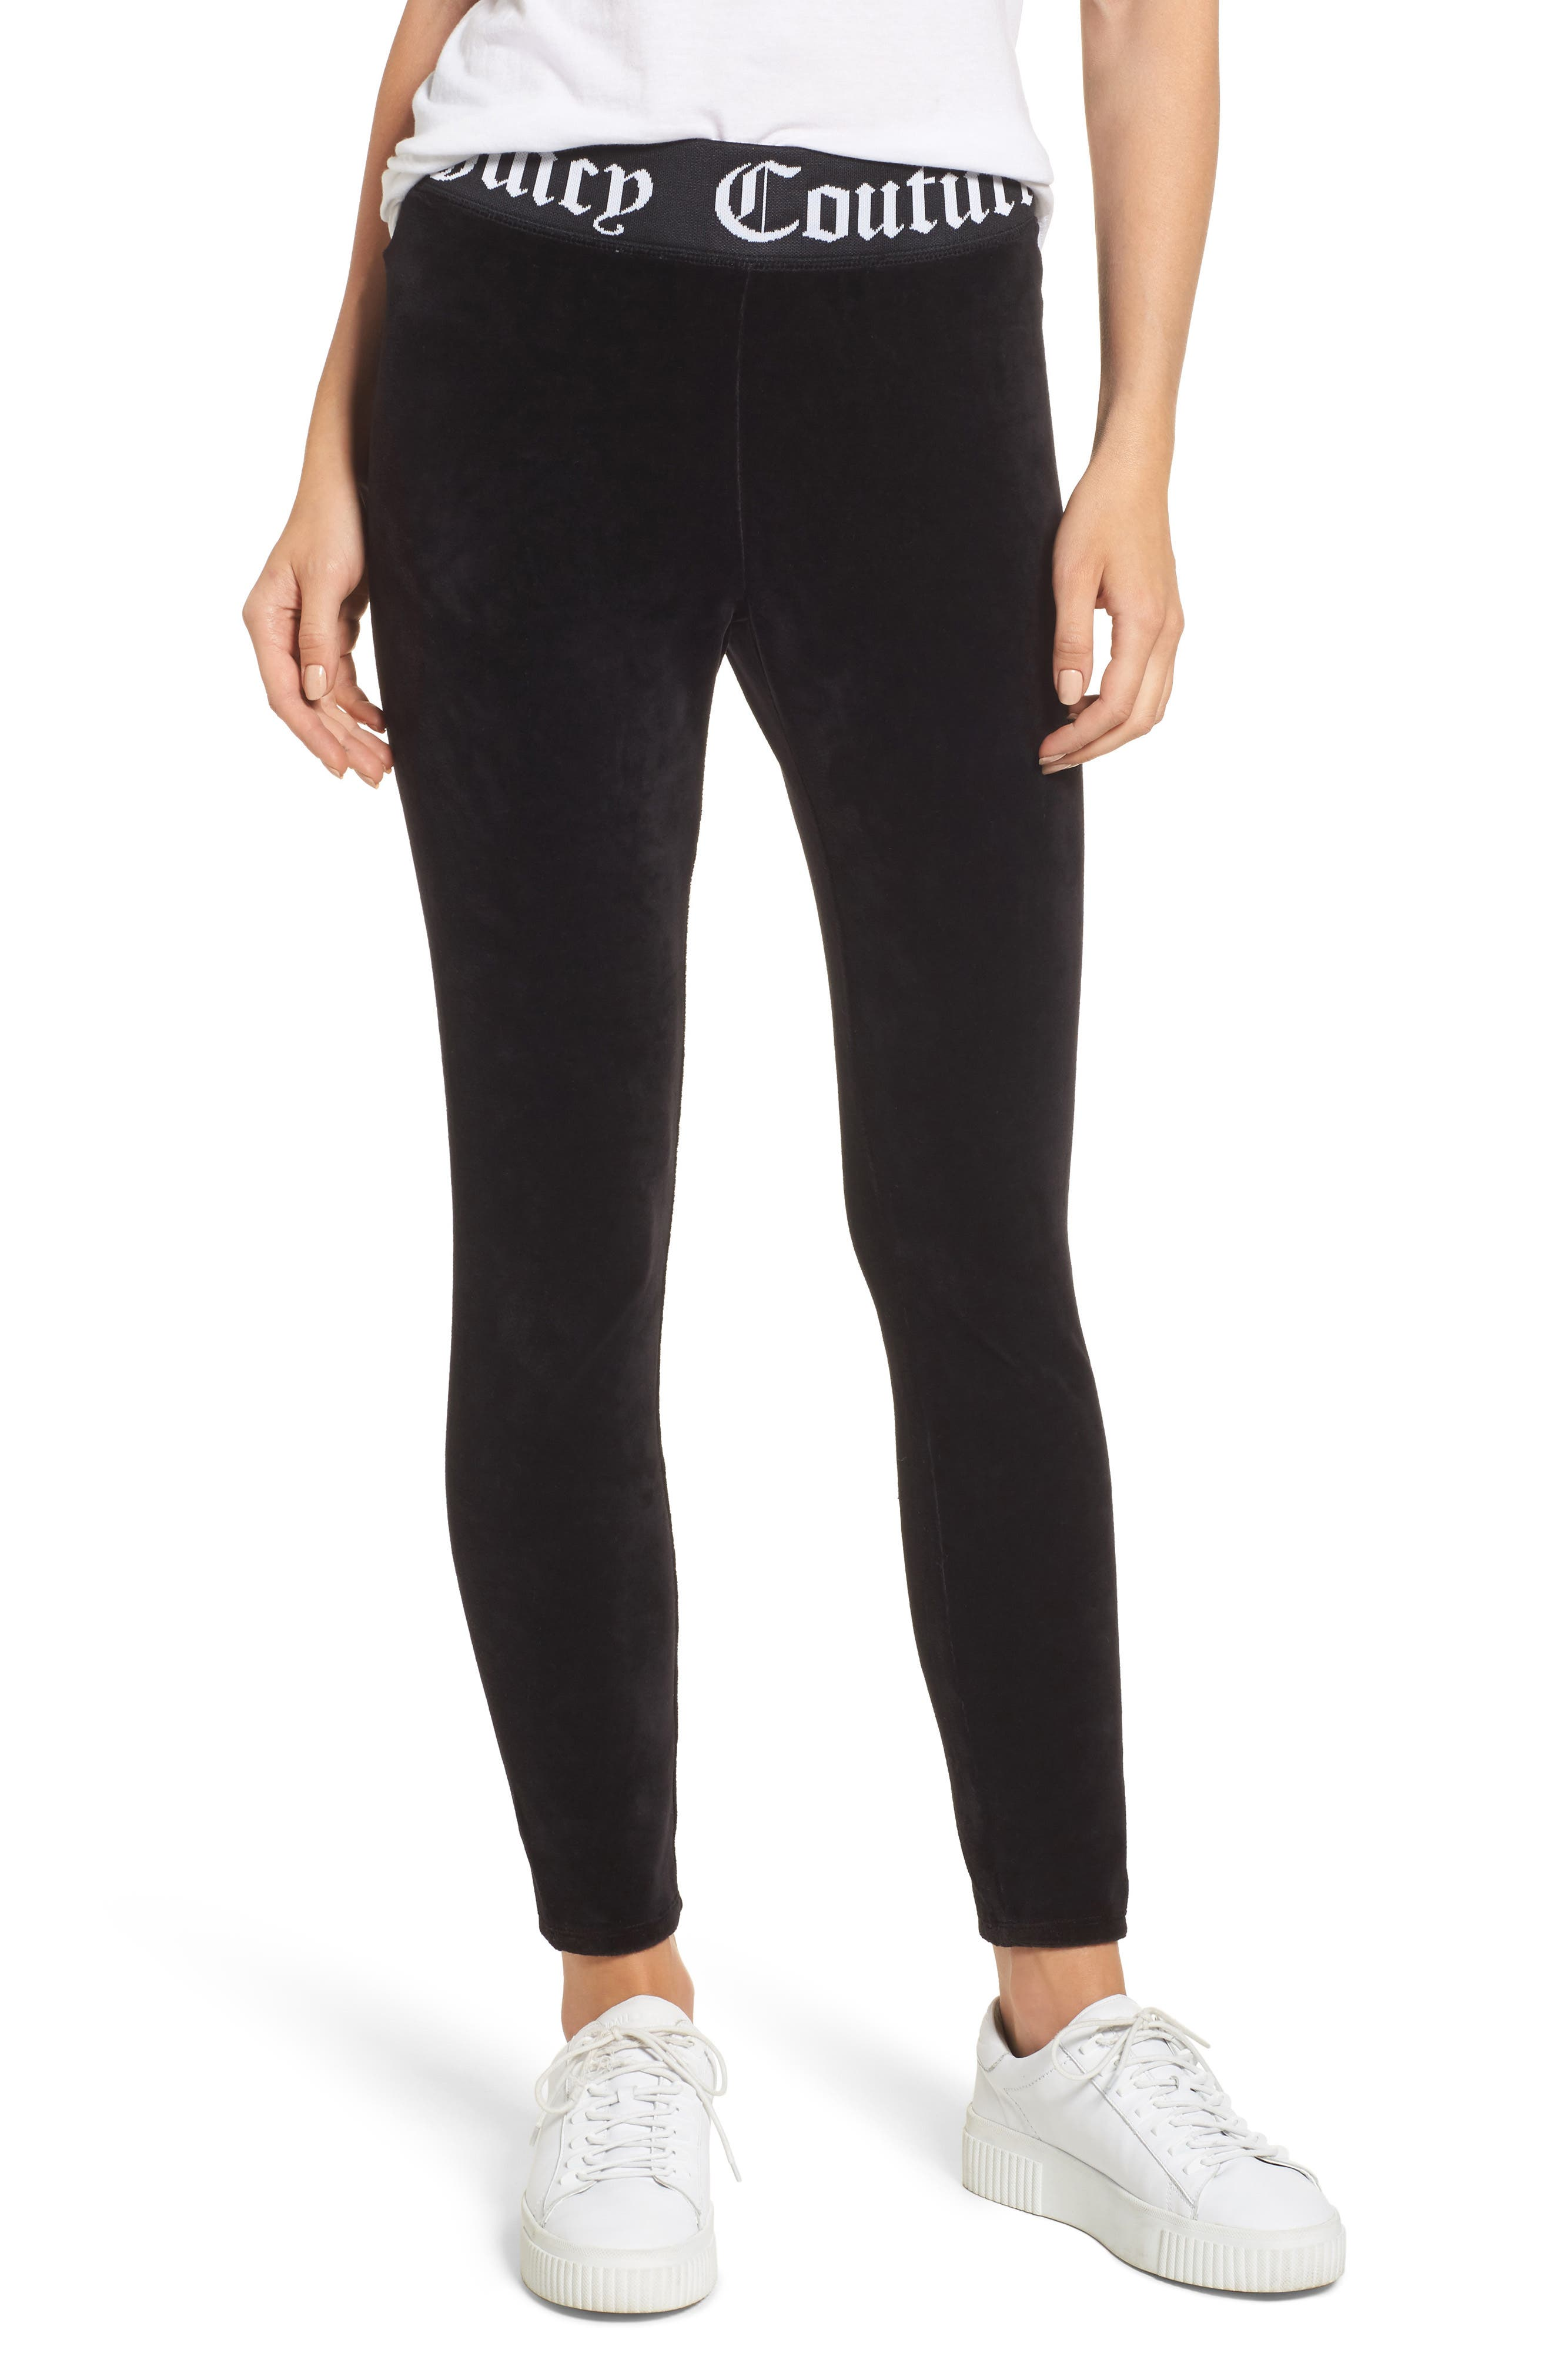 Main Image - Juicy Couture Stretch Velour Leggings